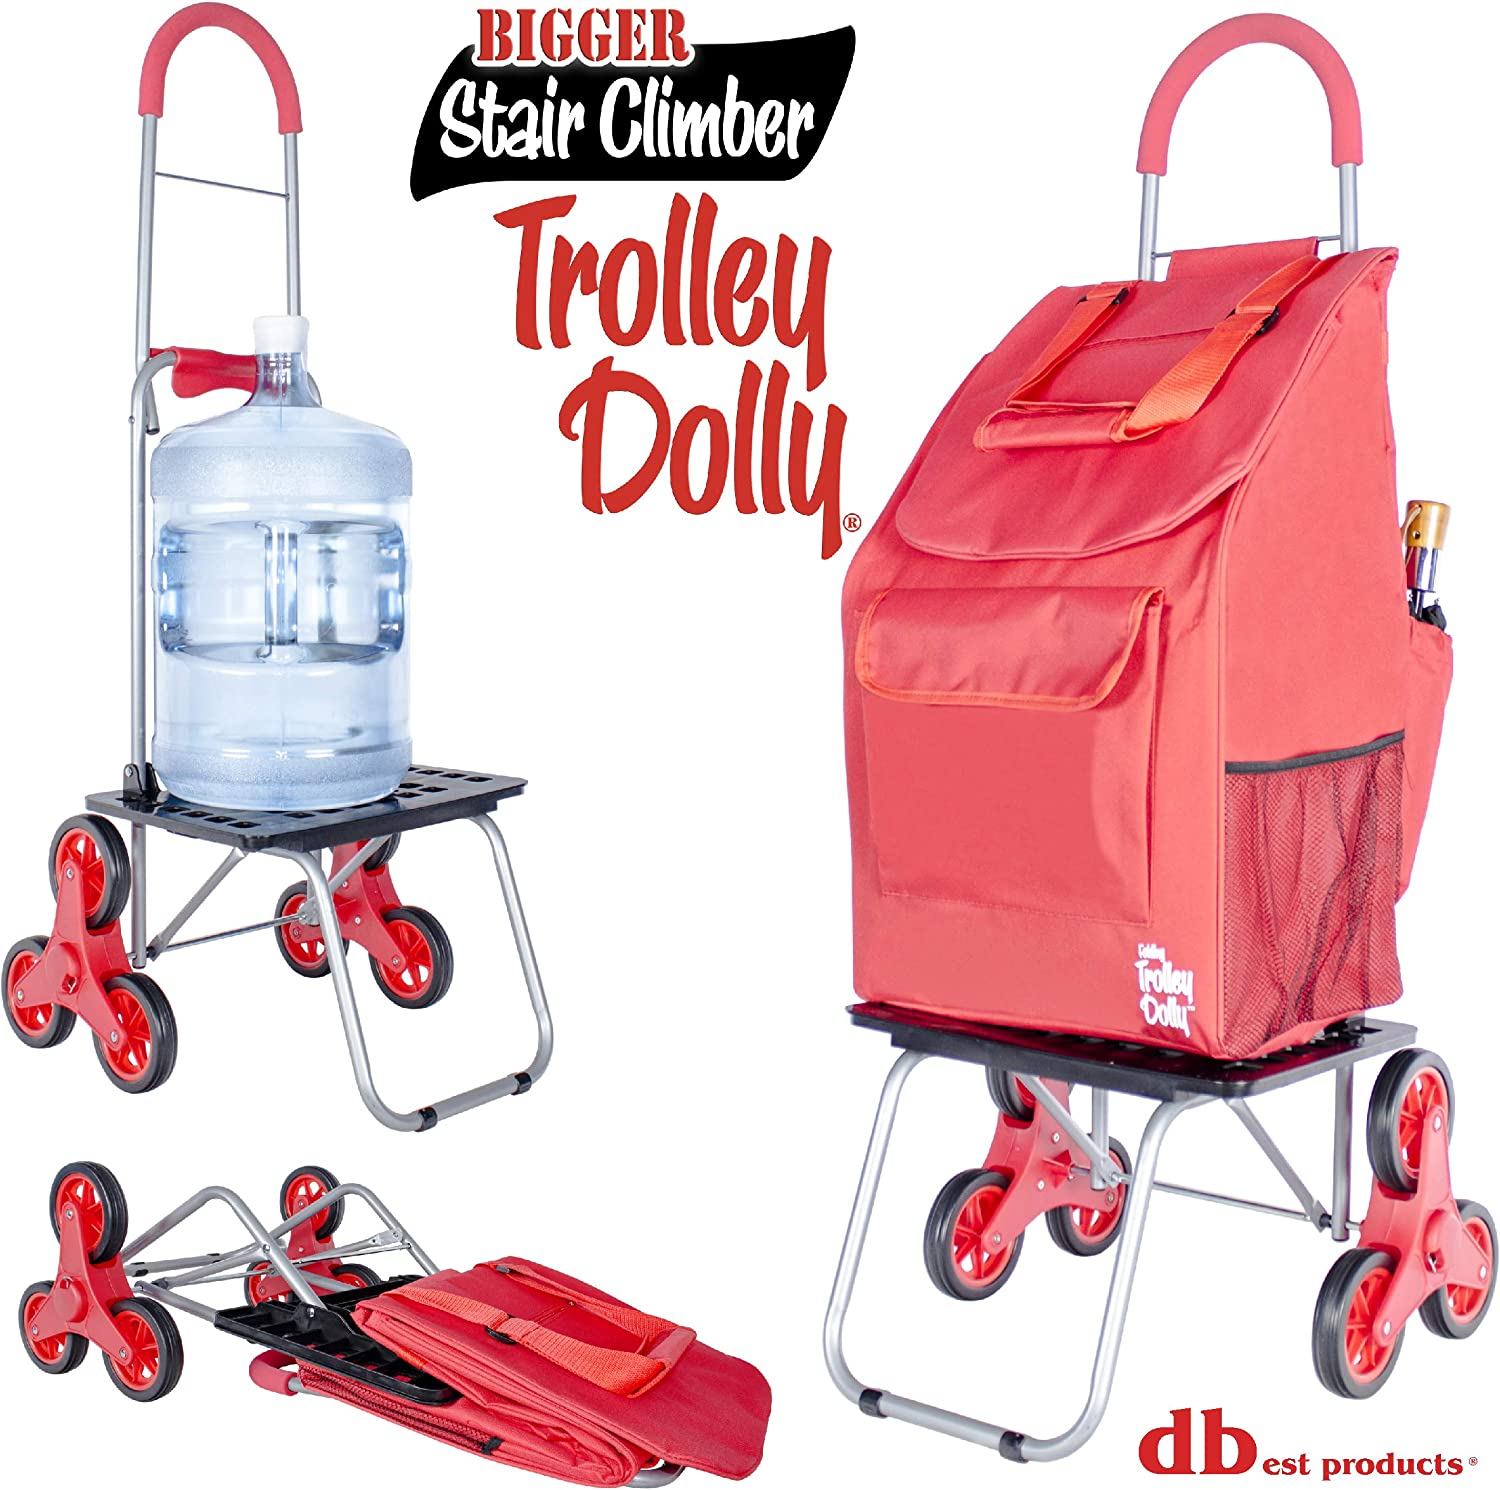 Red Shopping Grocery Foldable Cart Condo Apartment dbest products Stair Climber Trolley Dolly 2